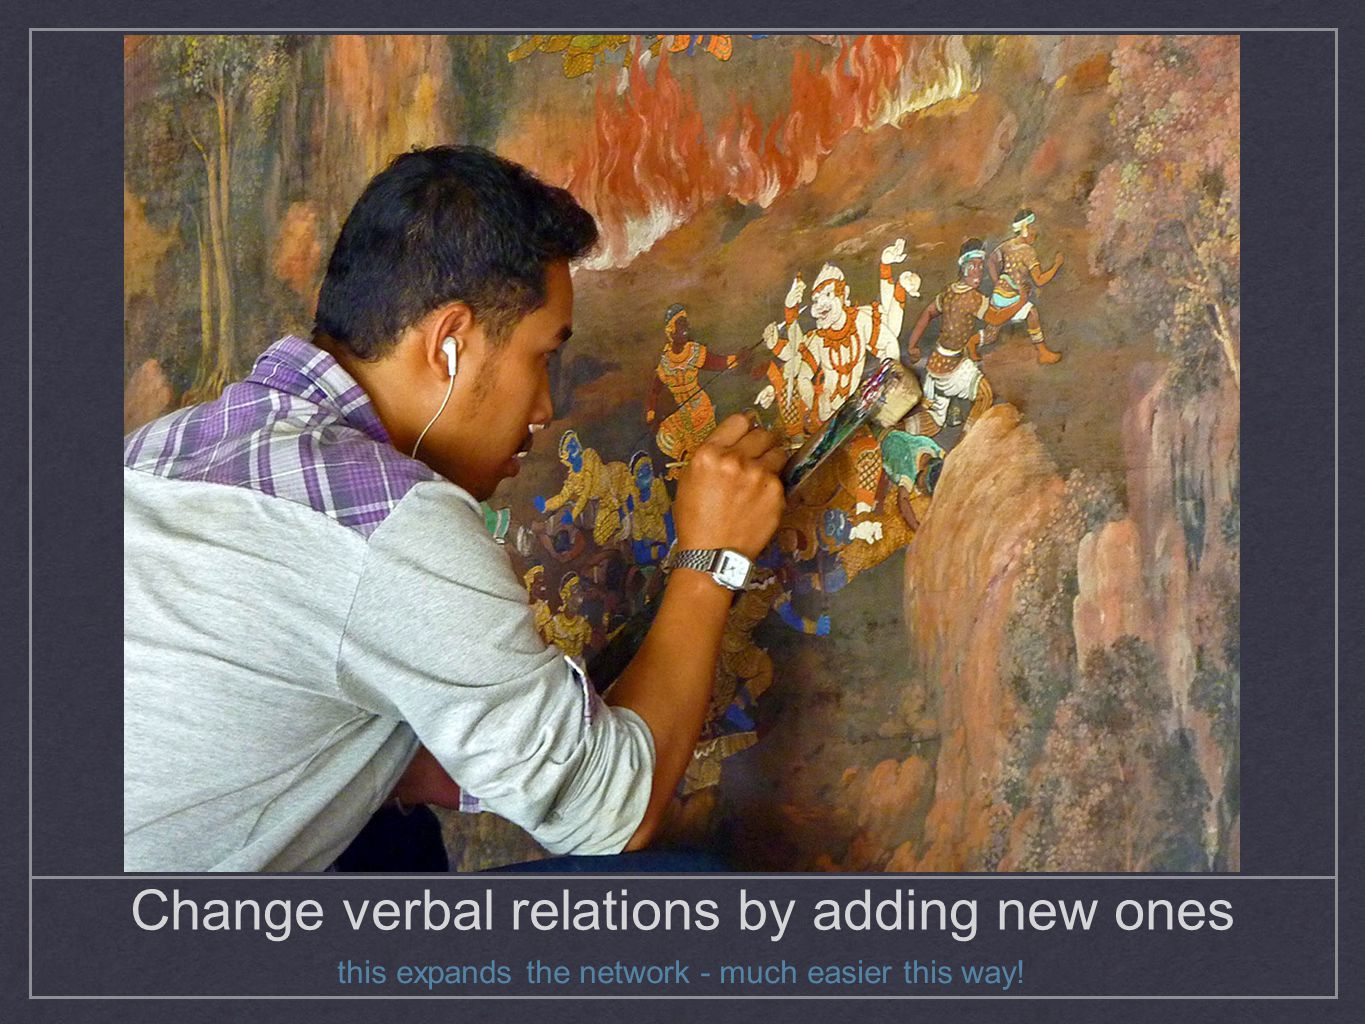 Change verbal relations by adding new ones this expands the network - much easier this way!